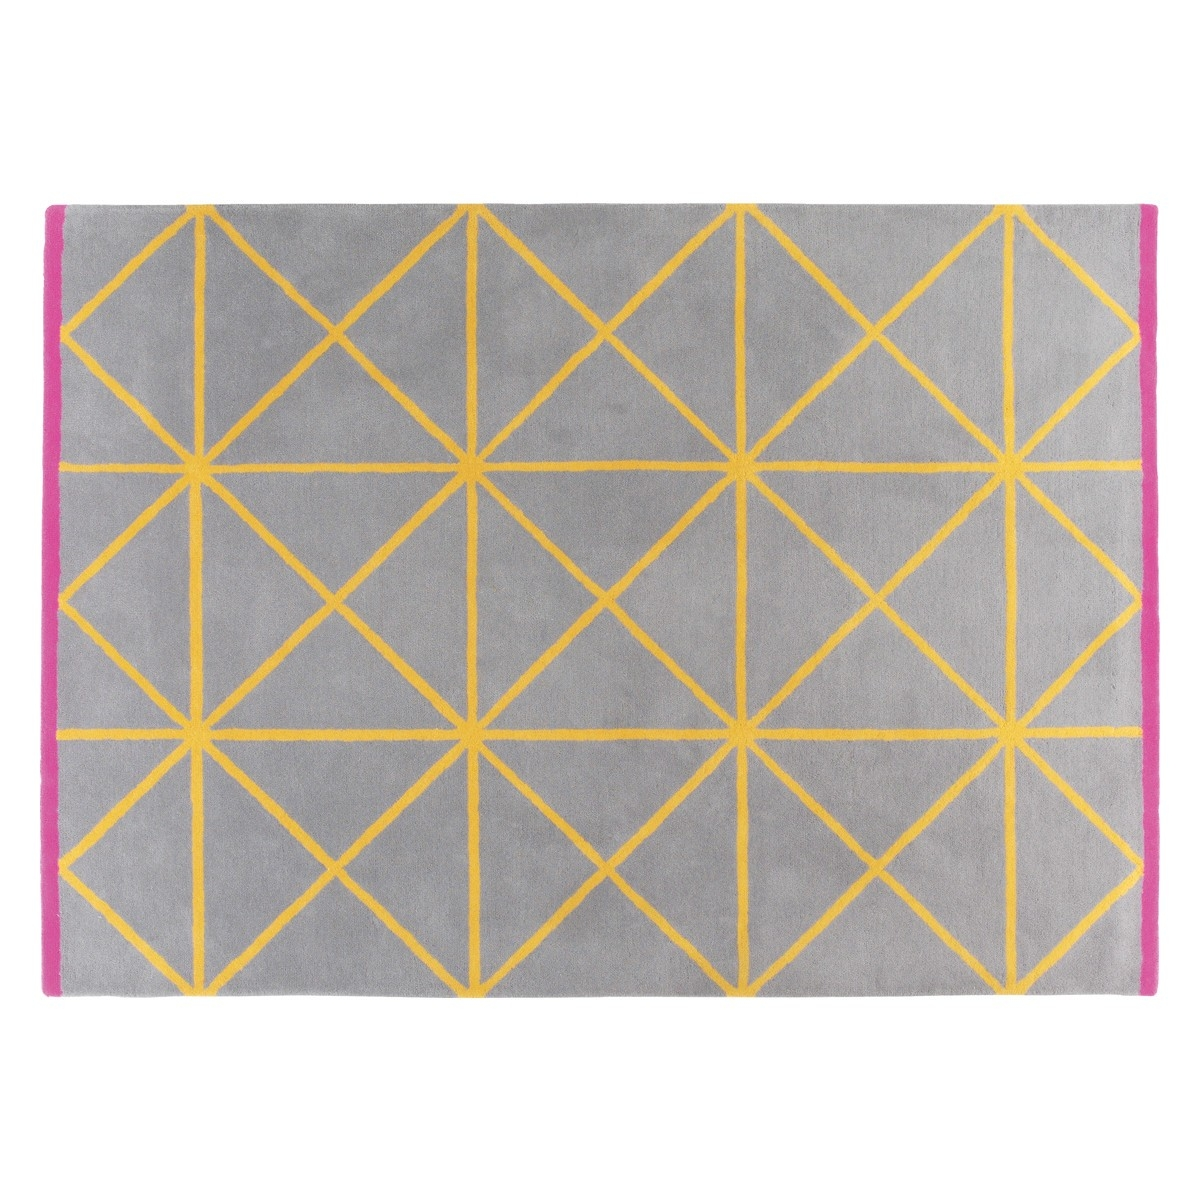 Grid Large Grey And Yellow Geometric Wool Rug 170 X 240cm Buy For Large Geometric Rugs (Image 6 of 15)